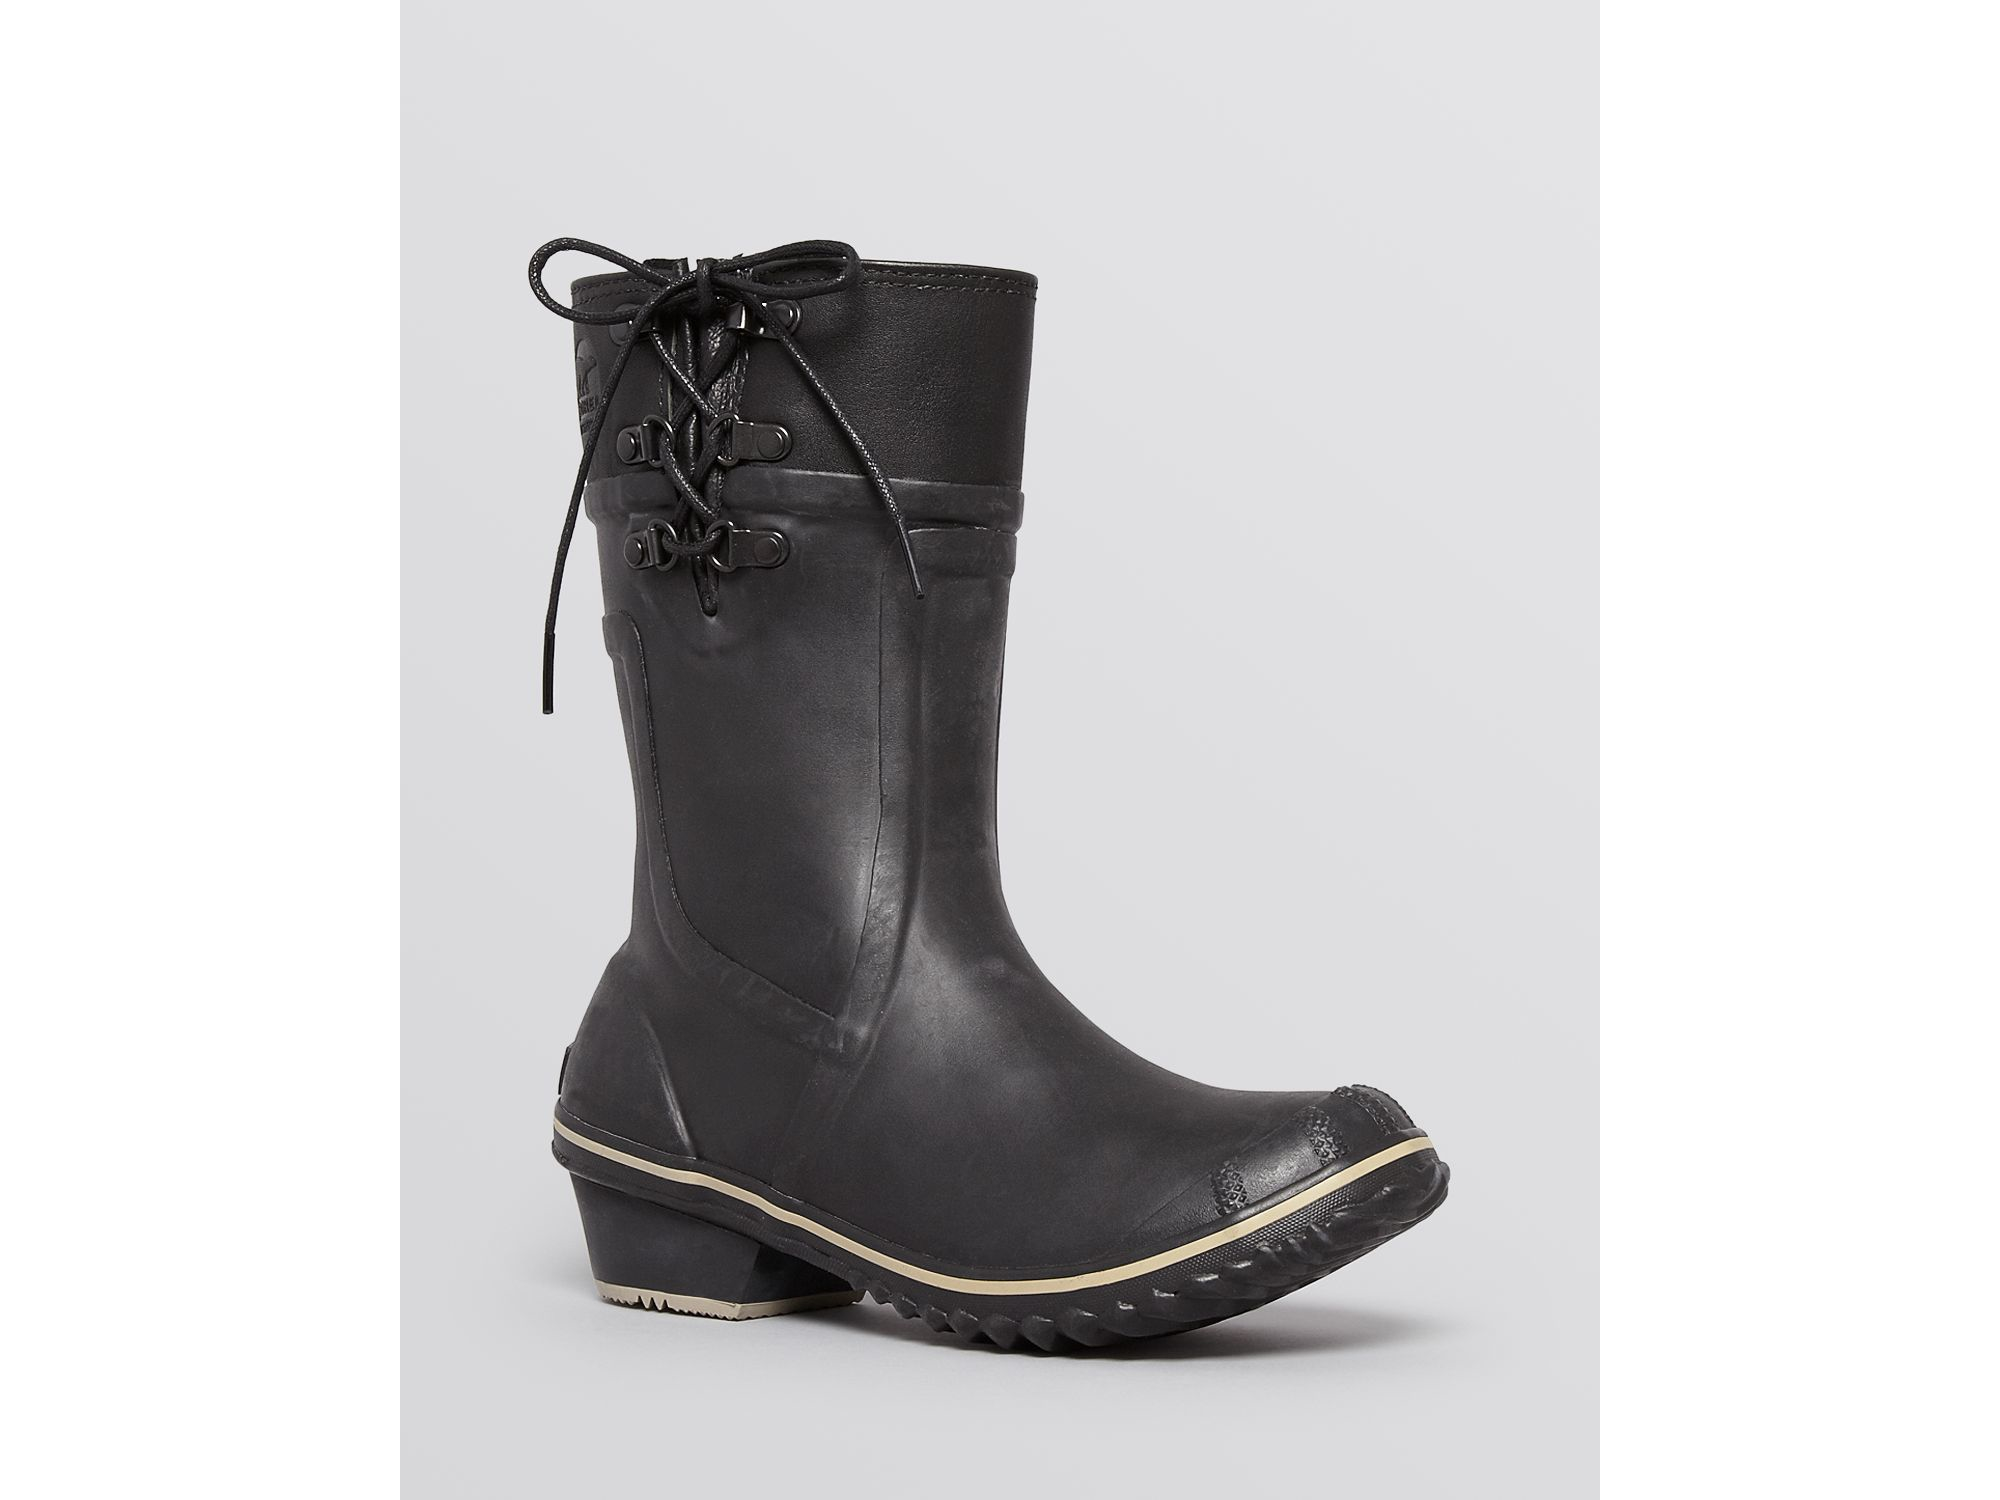 Sorel Waterproof Rubber Cold Weather Boots - Conquest�?Carly Glow in Black/Silver Sage (Black)